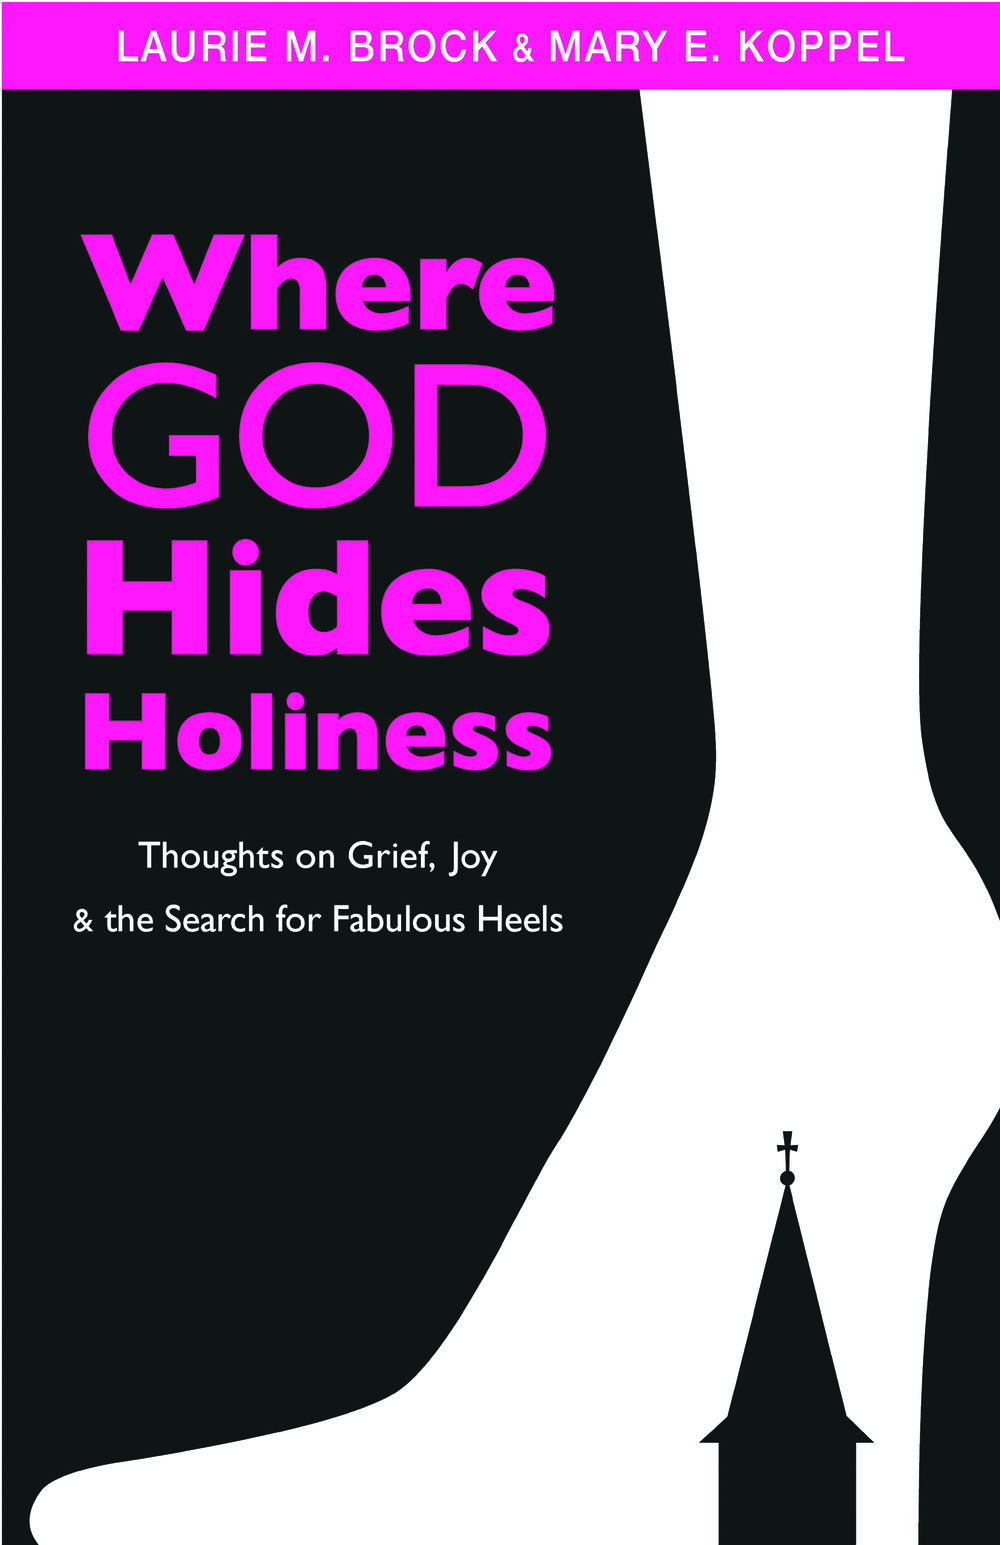 Where God Hides Holiness